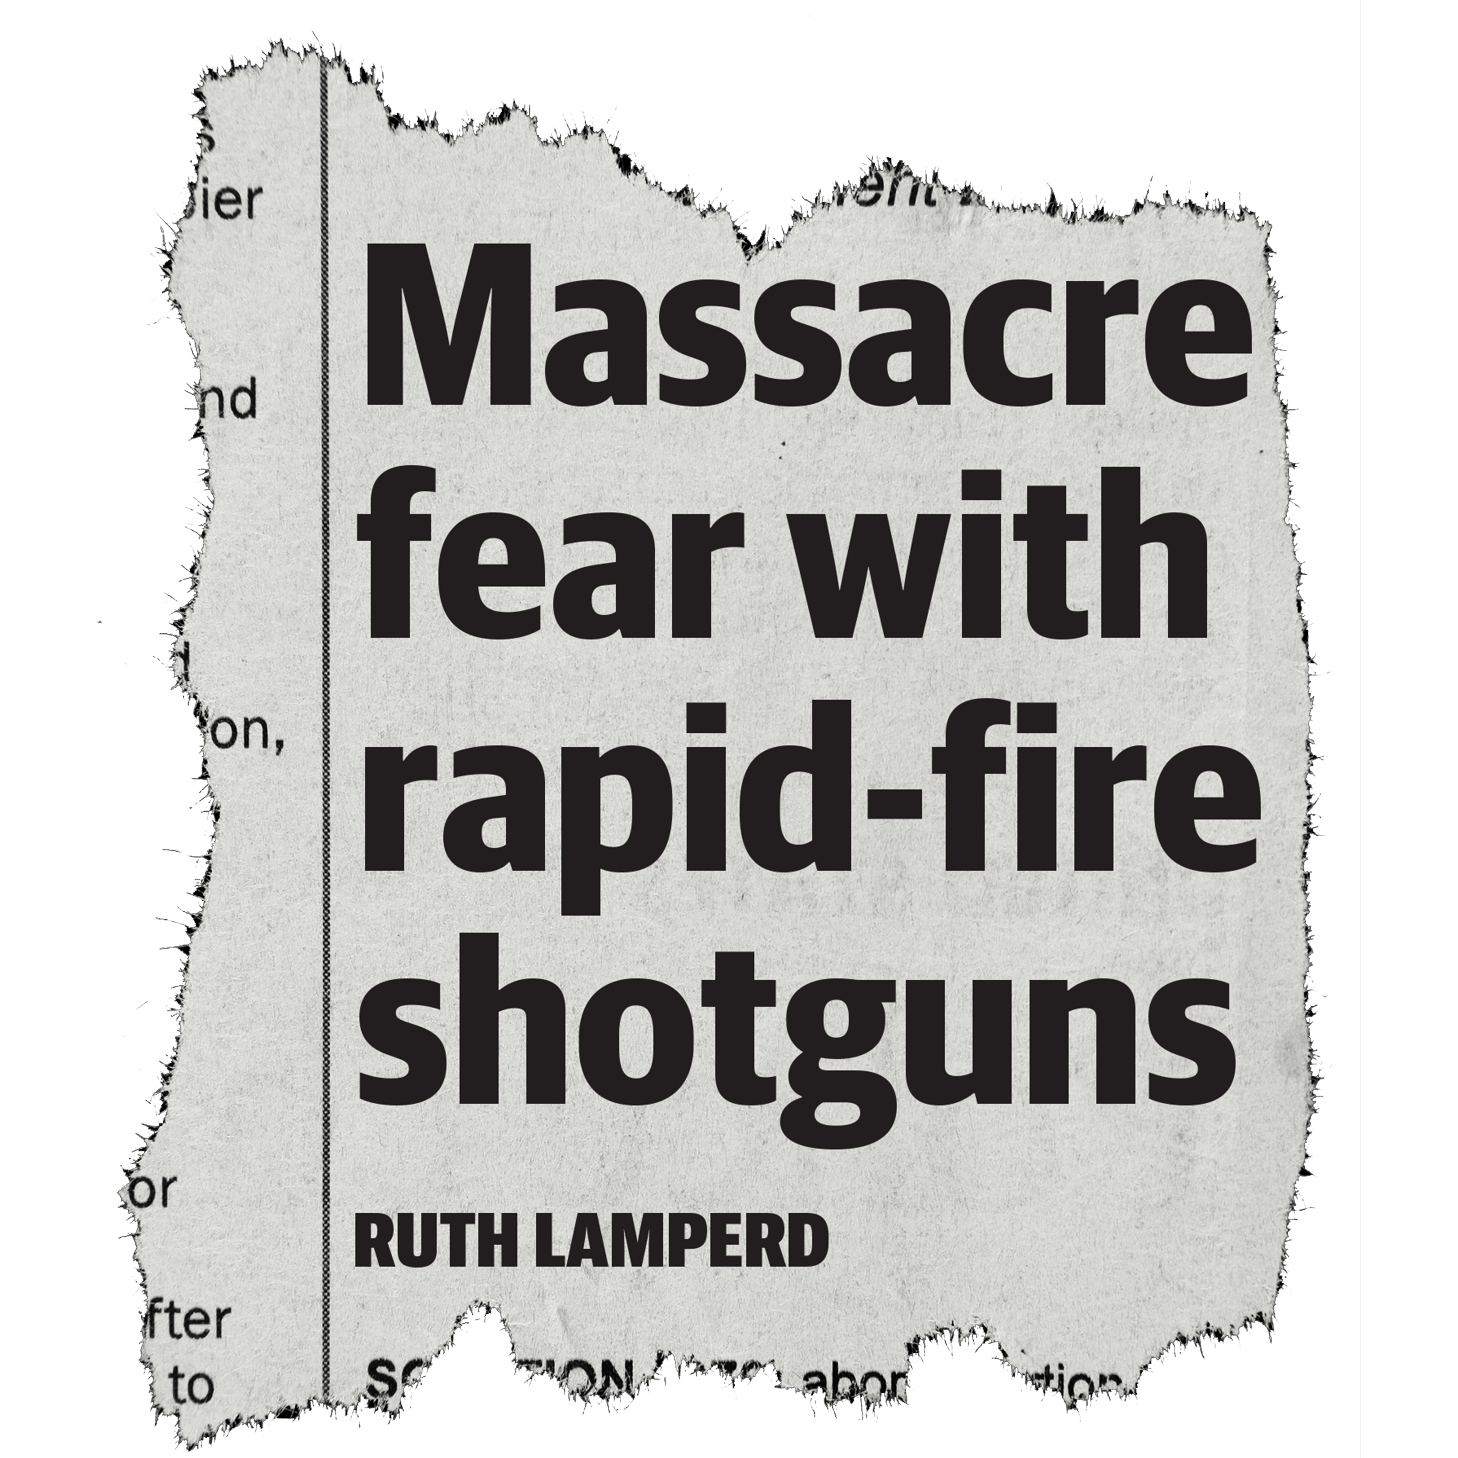 Massacre fear with rapid-fire shotguns